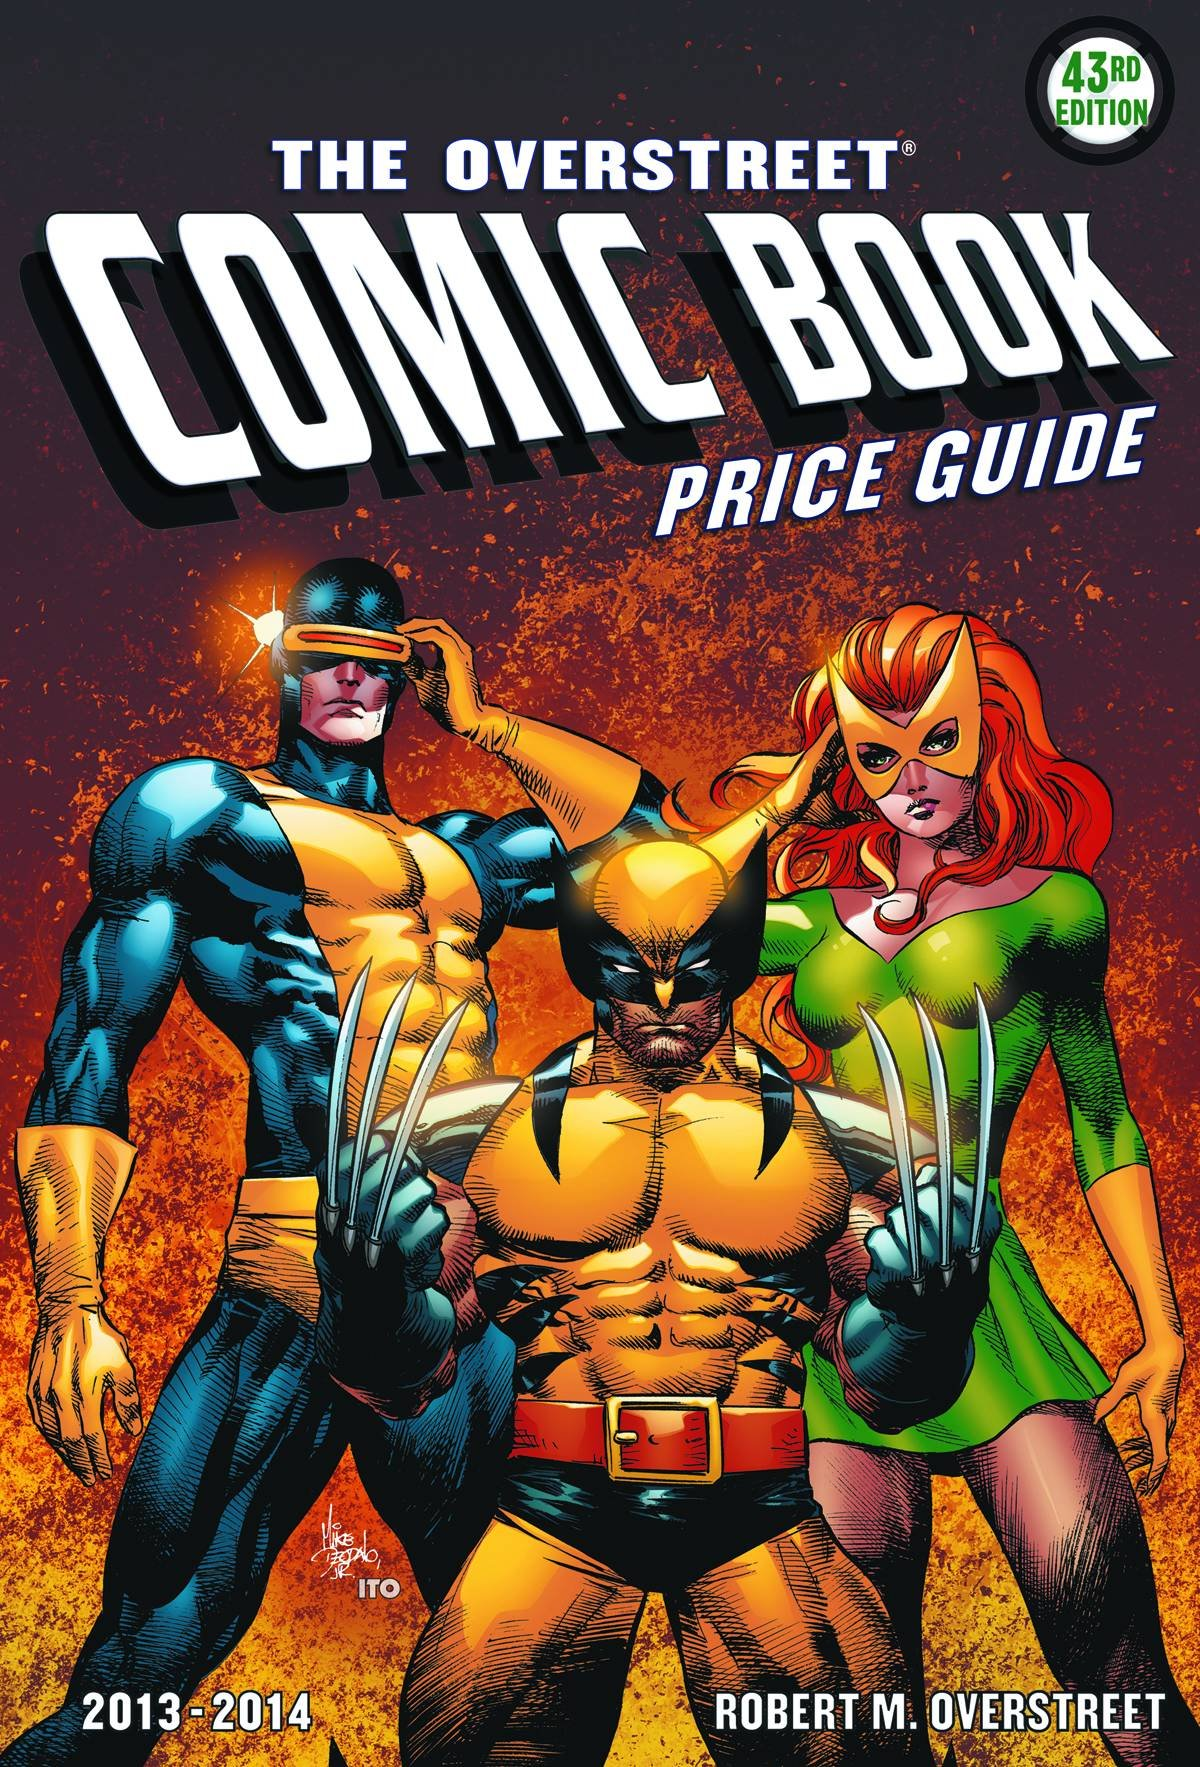 the overstreet comic book price guide vol 43 robert m overstreet rh amazon com Overstreet Comic Price Guide Free Superman Comic Price Guide